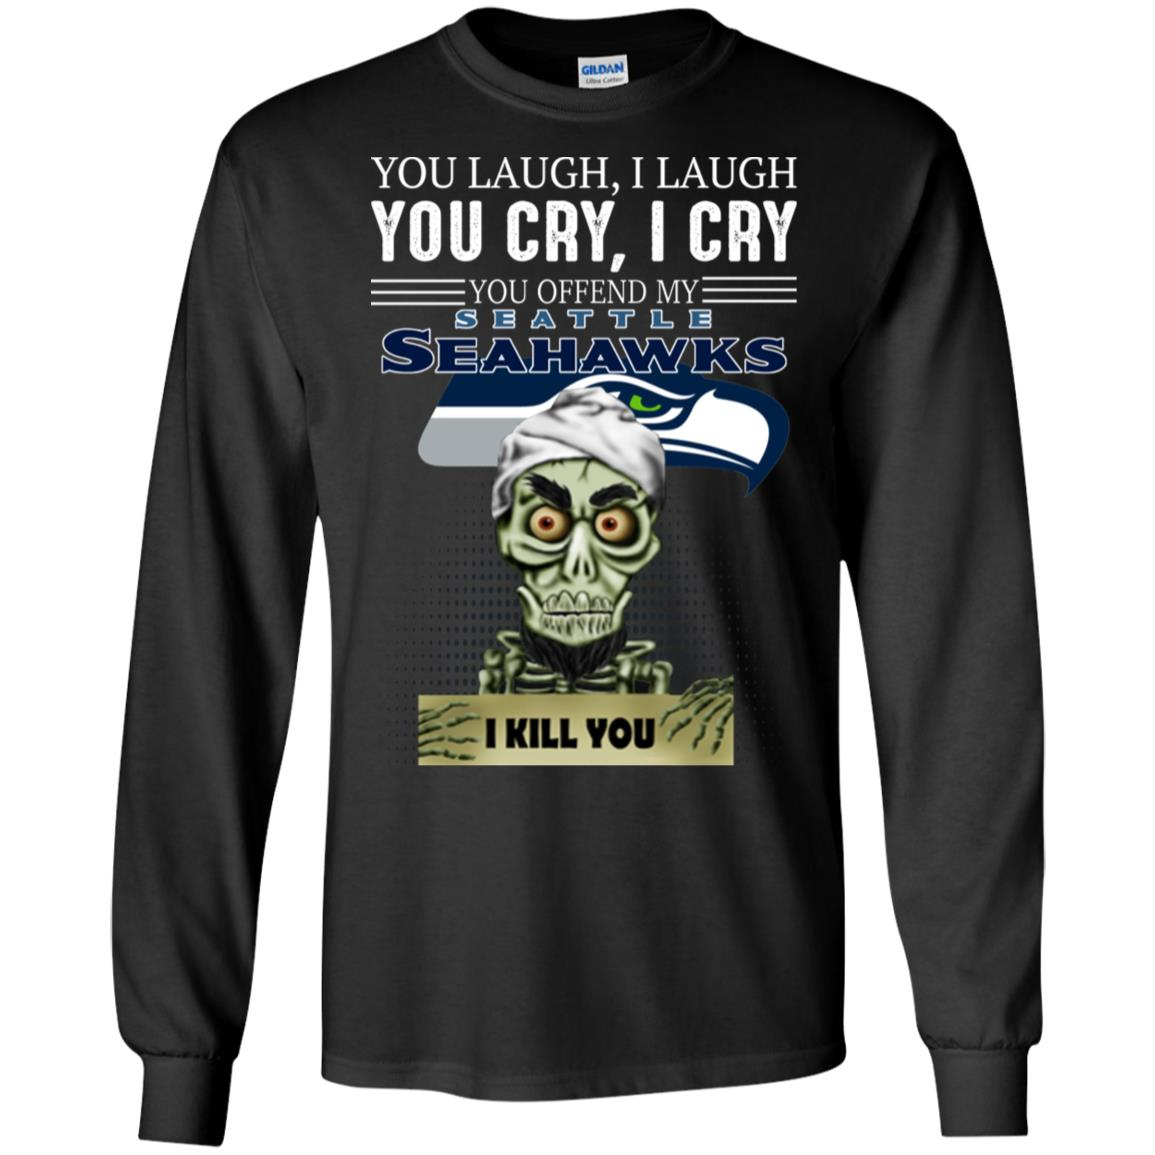 You Laugh I Laugh You Cry I Cry You offend my Seattle Seahawks I kill you